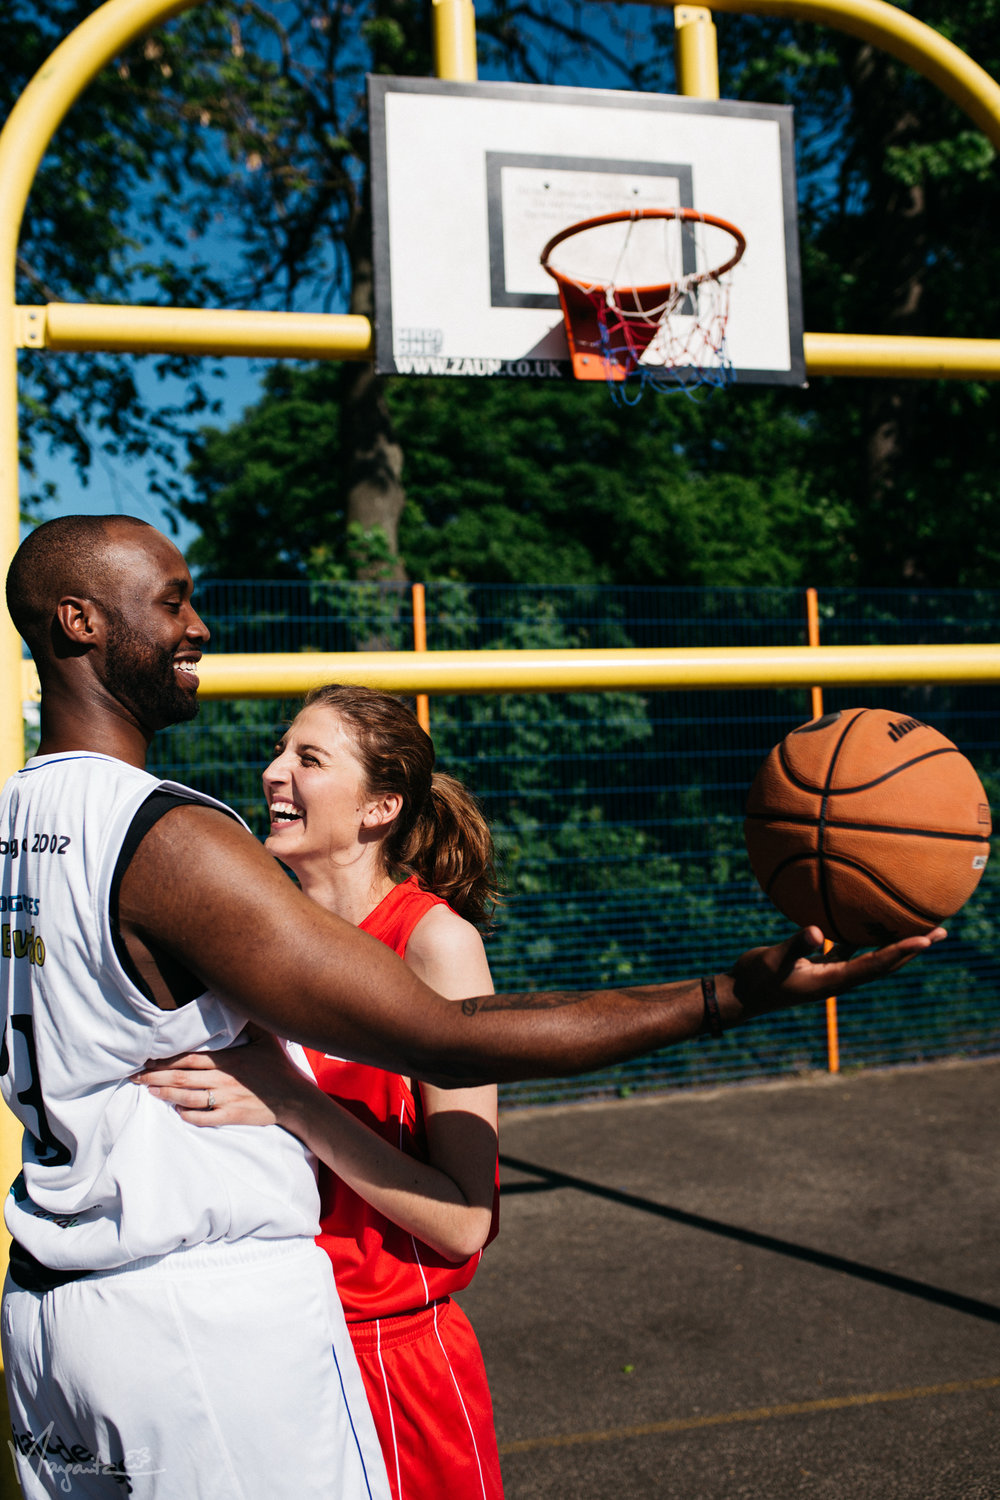 Basketball Engagement Photoshoot, Basketball Engagement Photos, Basketball Engagement, Basketball Couple, Sports Engagement, International Couple, Sporty Couple, Newcastle Upon Tyne Photographer, Newcastle Photographer, Northumberland Photographer, Margarita G Photography